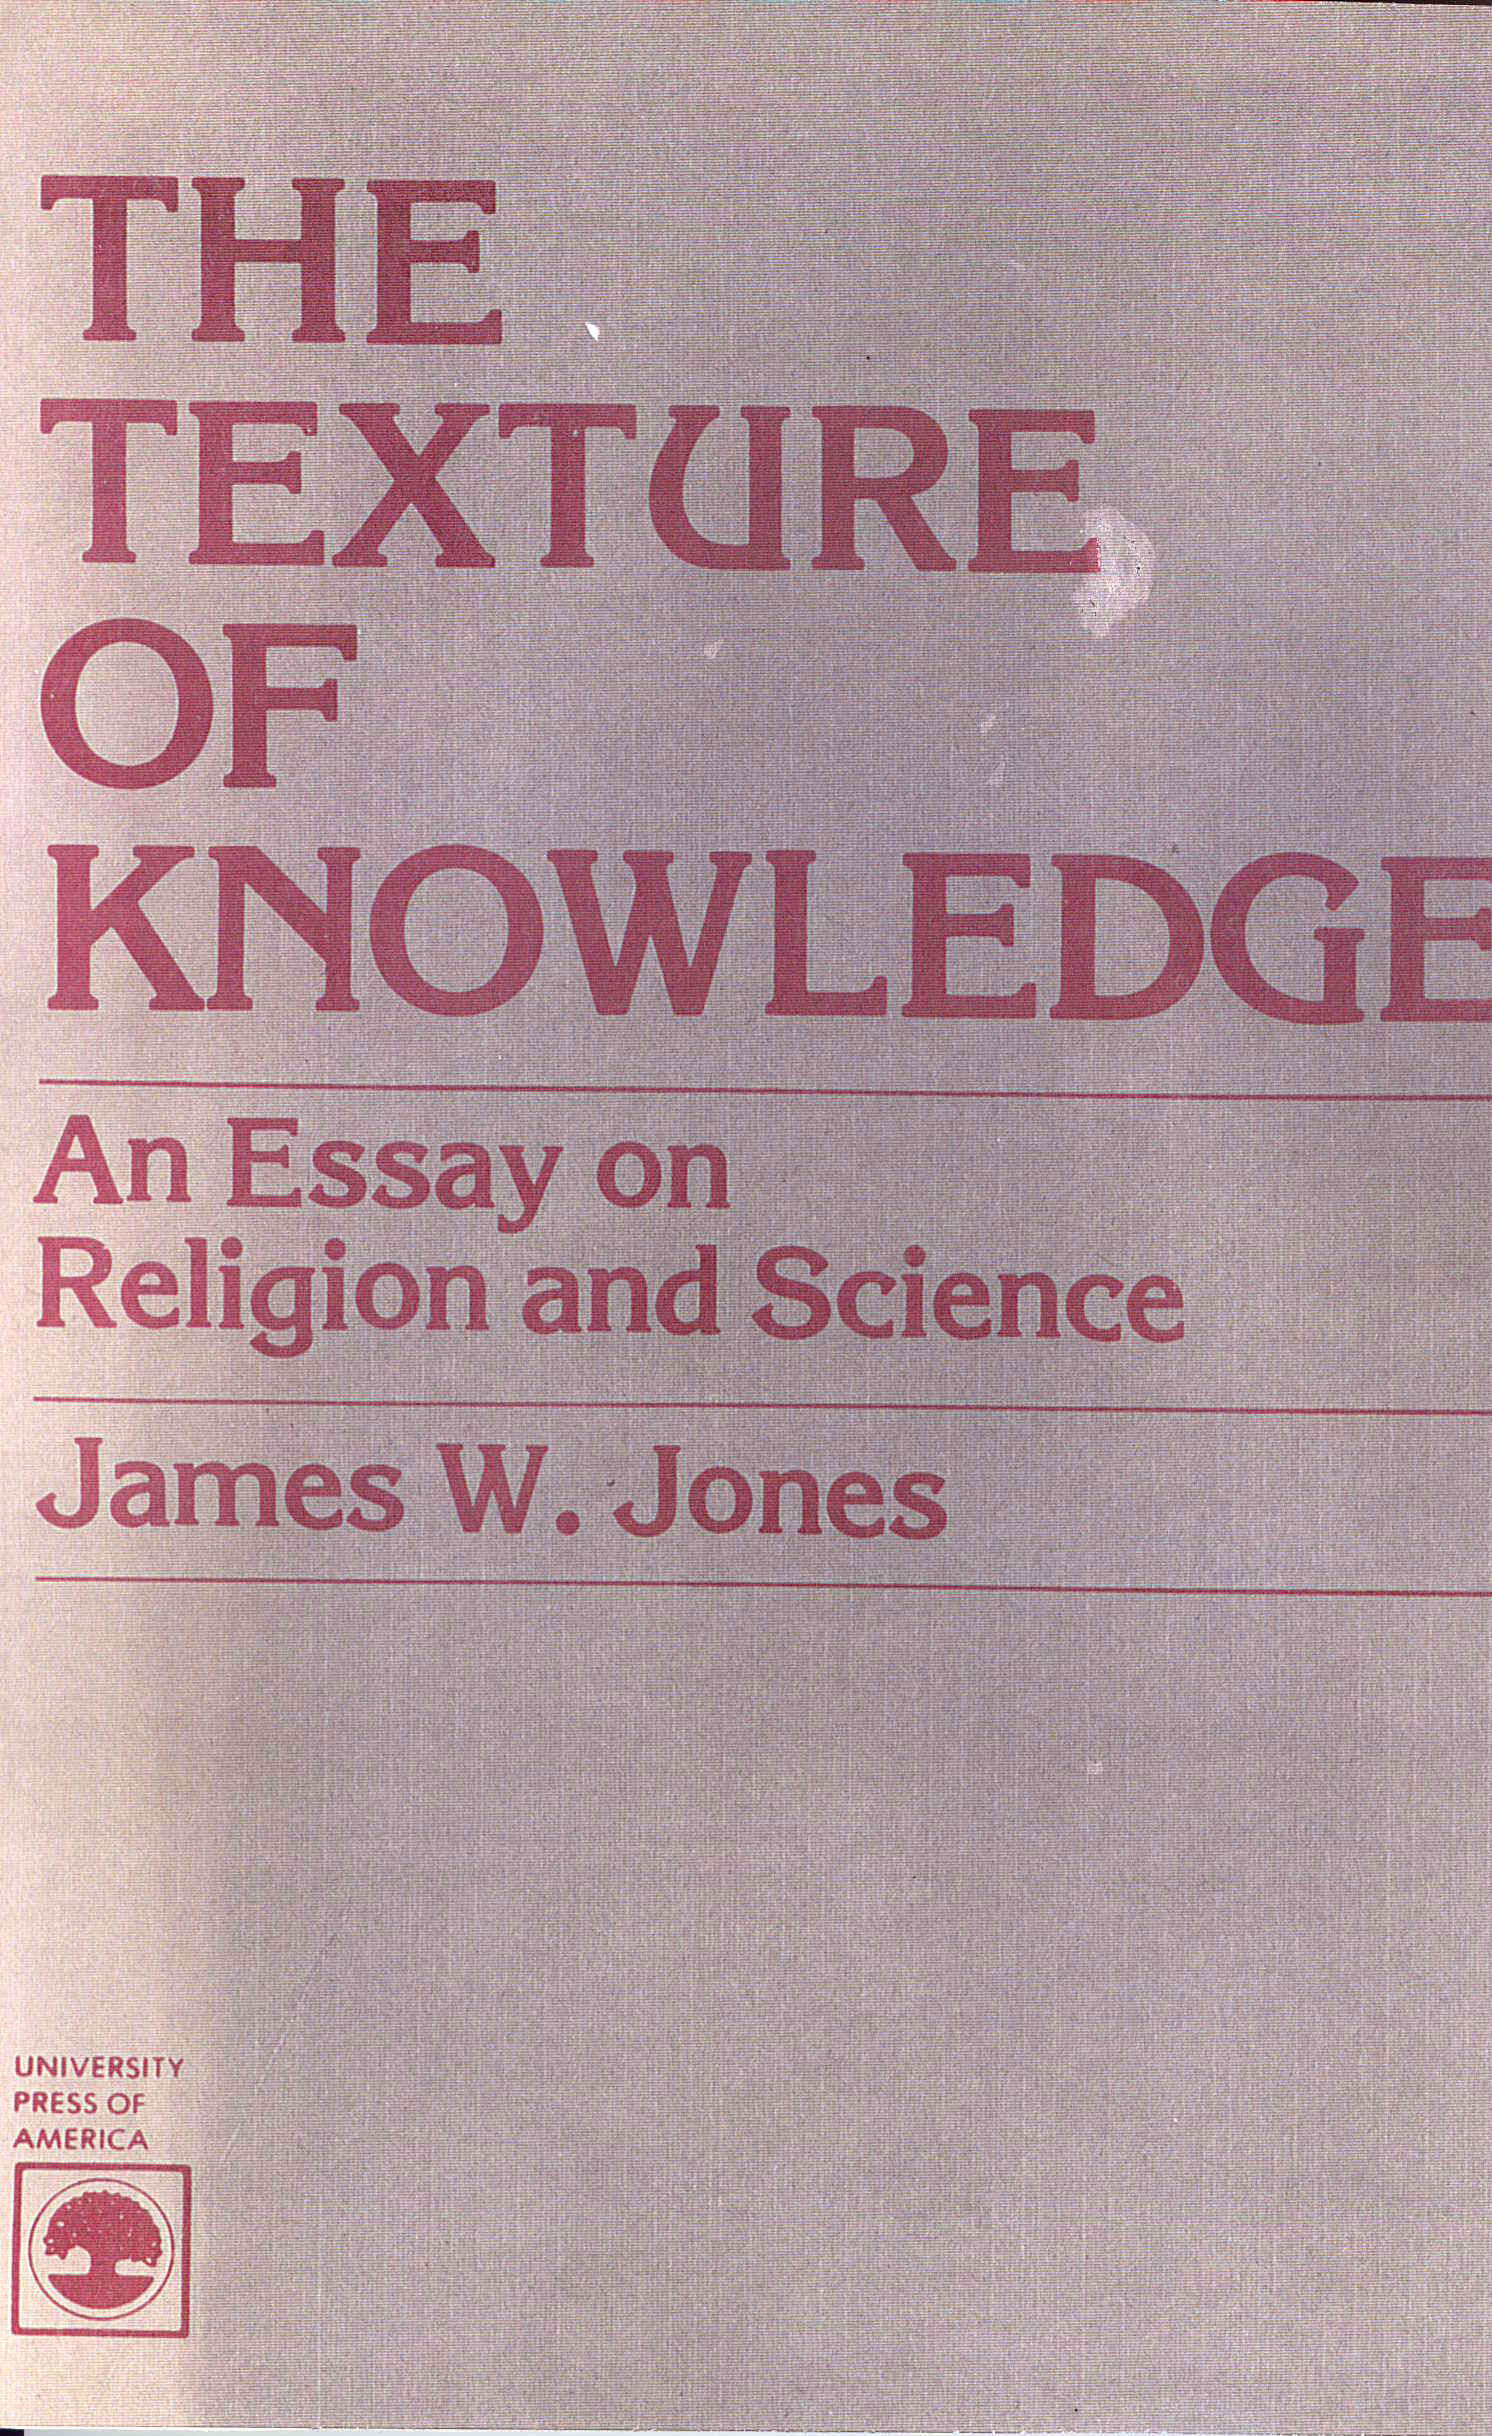 jones james w the texture of knowledgean essay on religion and science univ press america 1981